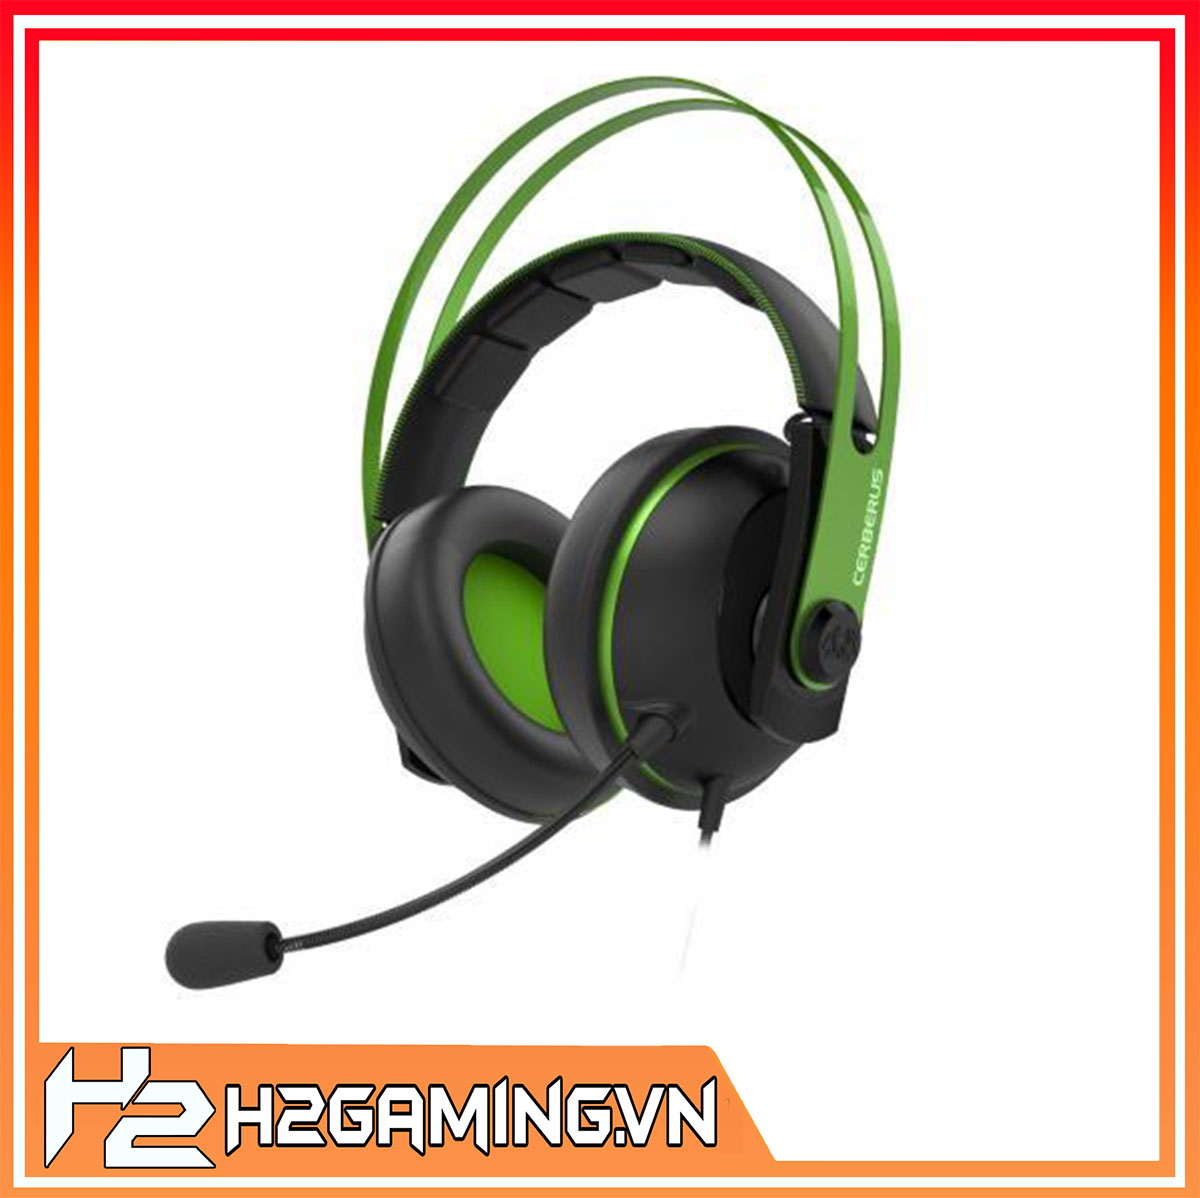 Headset_Cerberus_V2_Green1